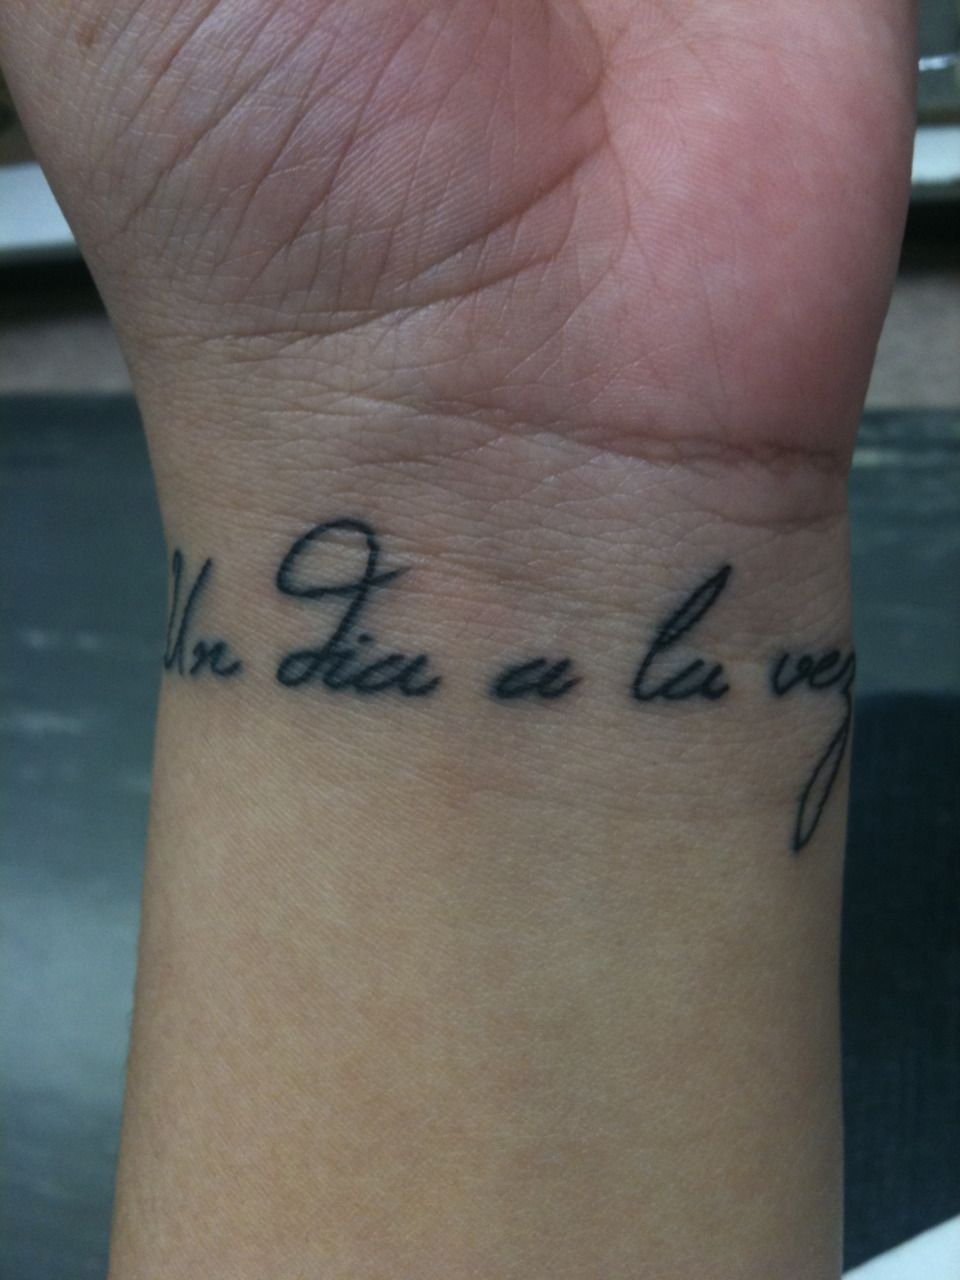 "This tattoo says ""Un dia a la vez"" which means ""One day at a time"" in Spanish. It's a daily reminder to take things slow and enjoy life because tomorrow is never promised."